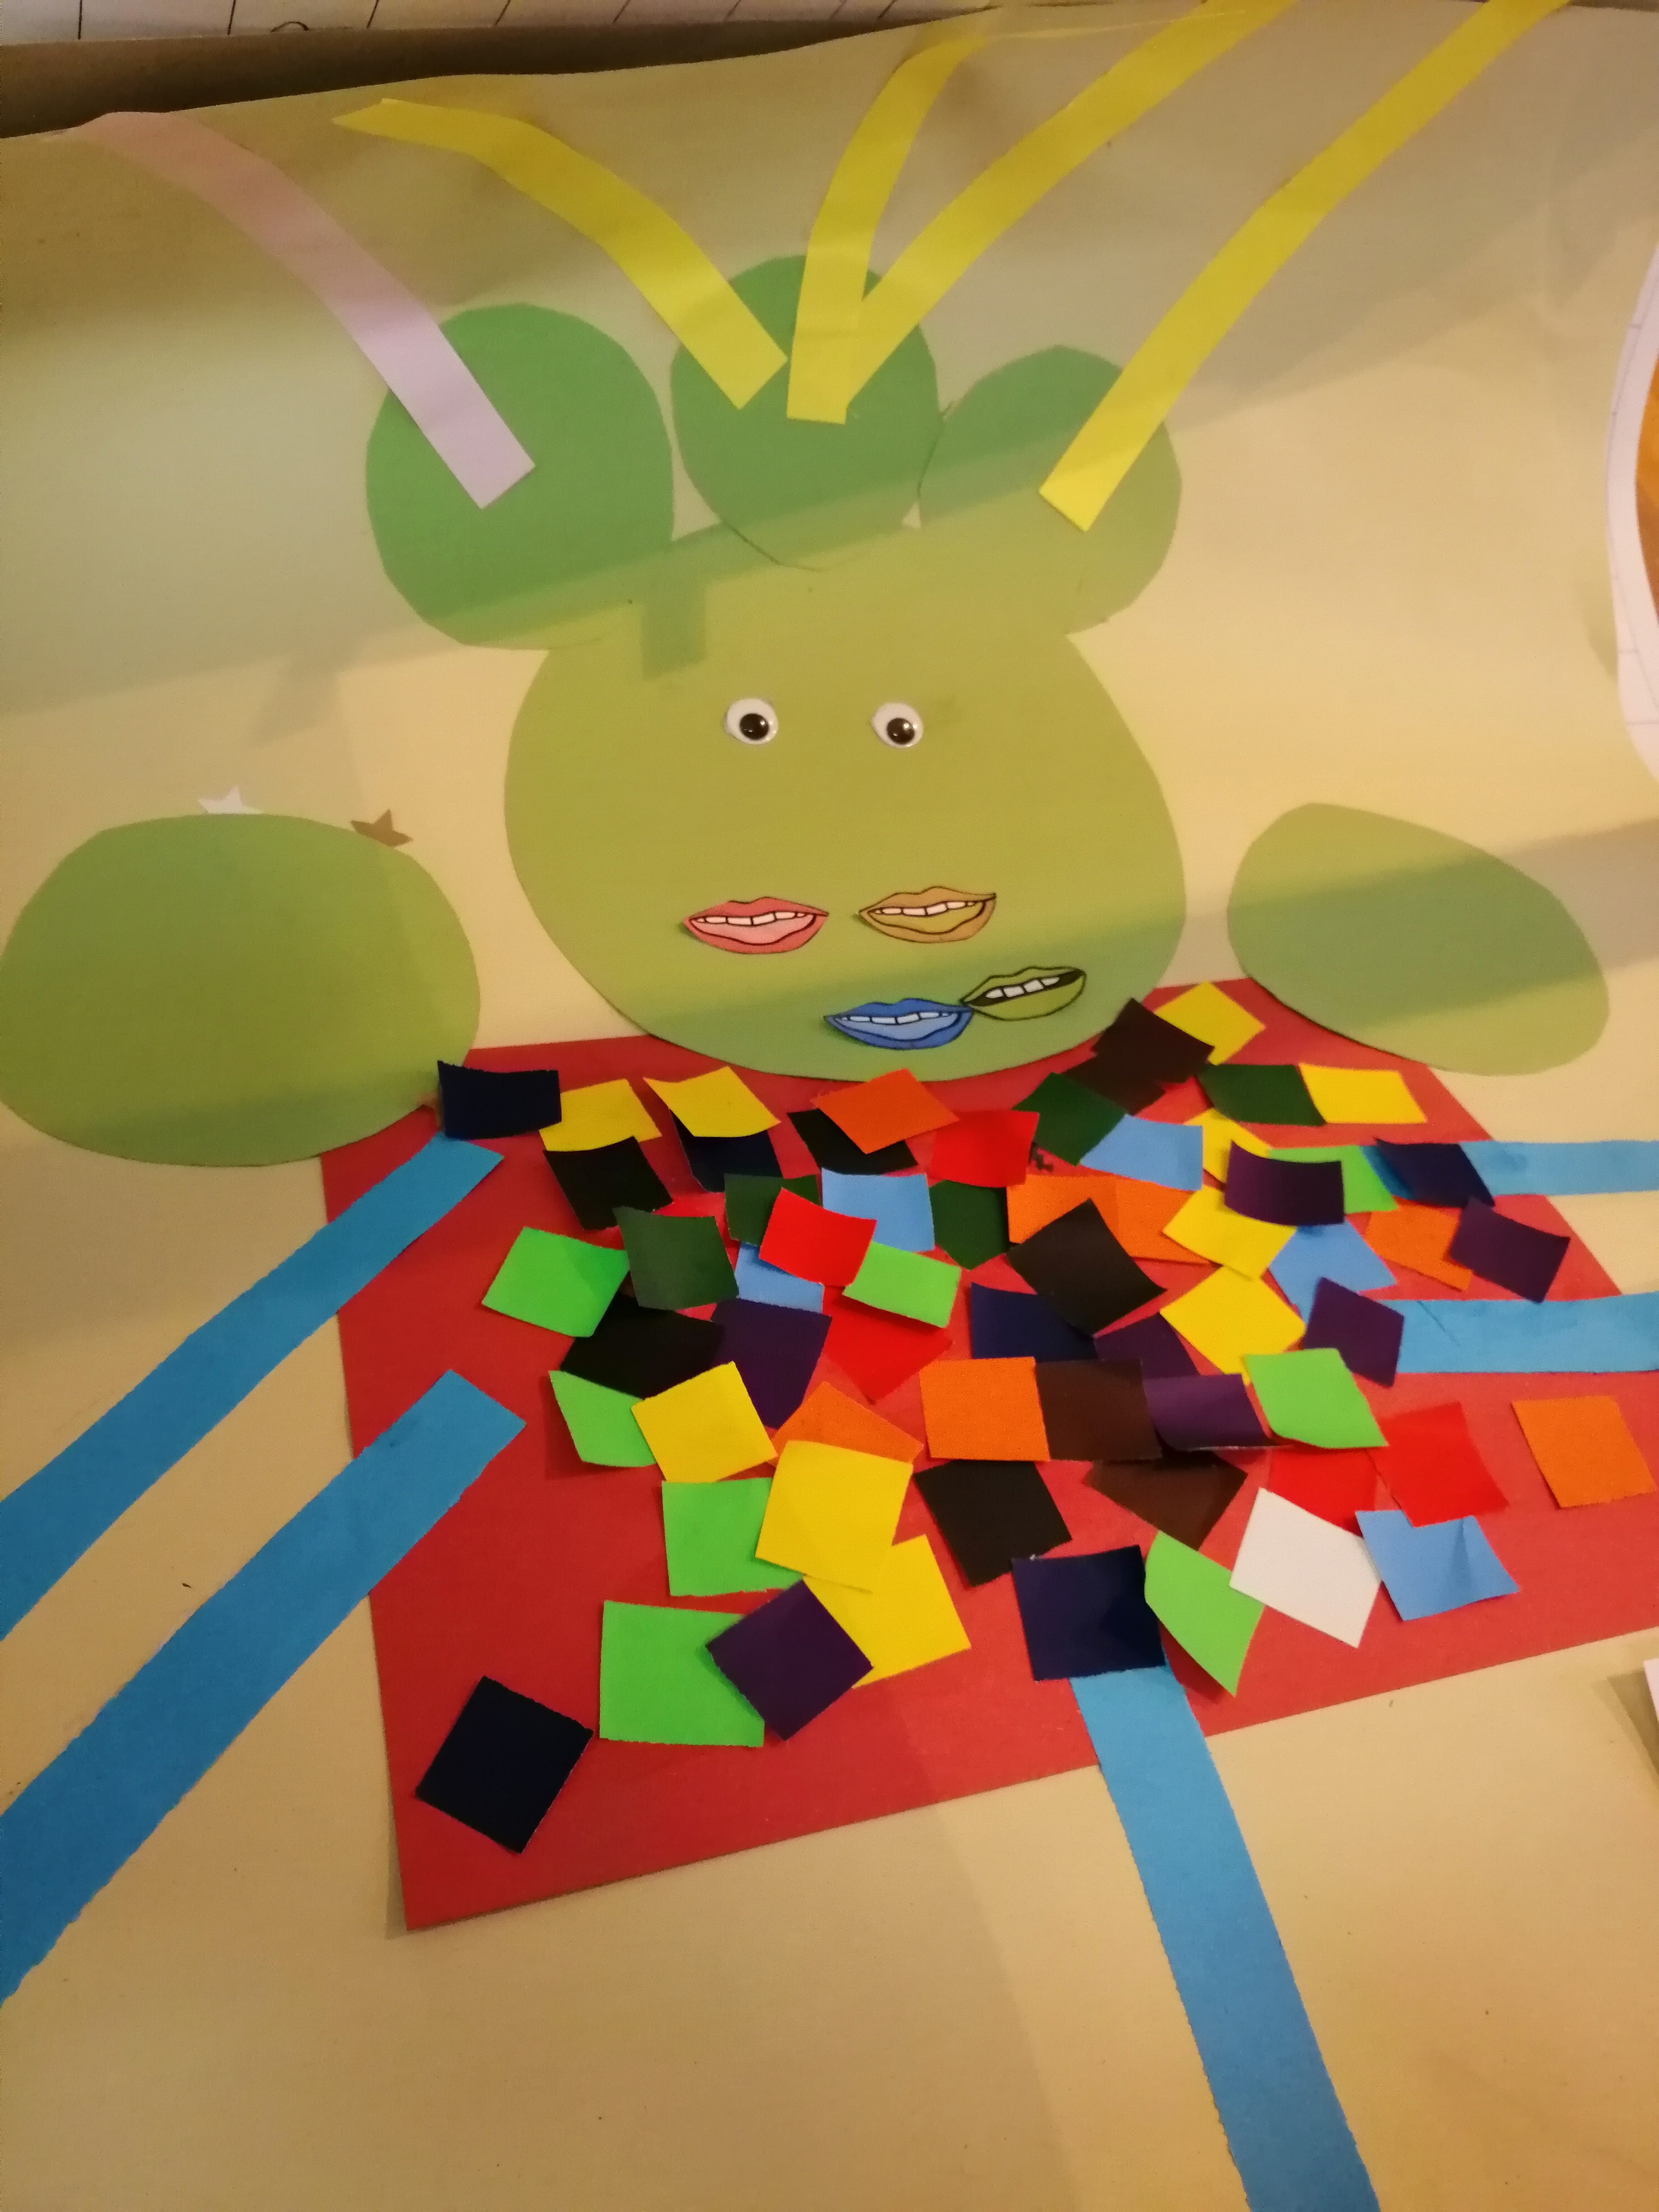 EYFS use creativity to create their very own Utopia alien community!